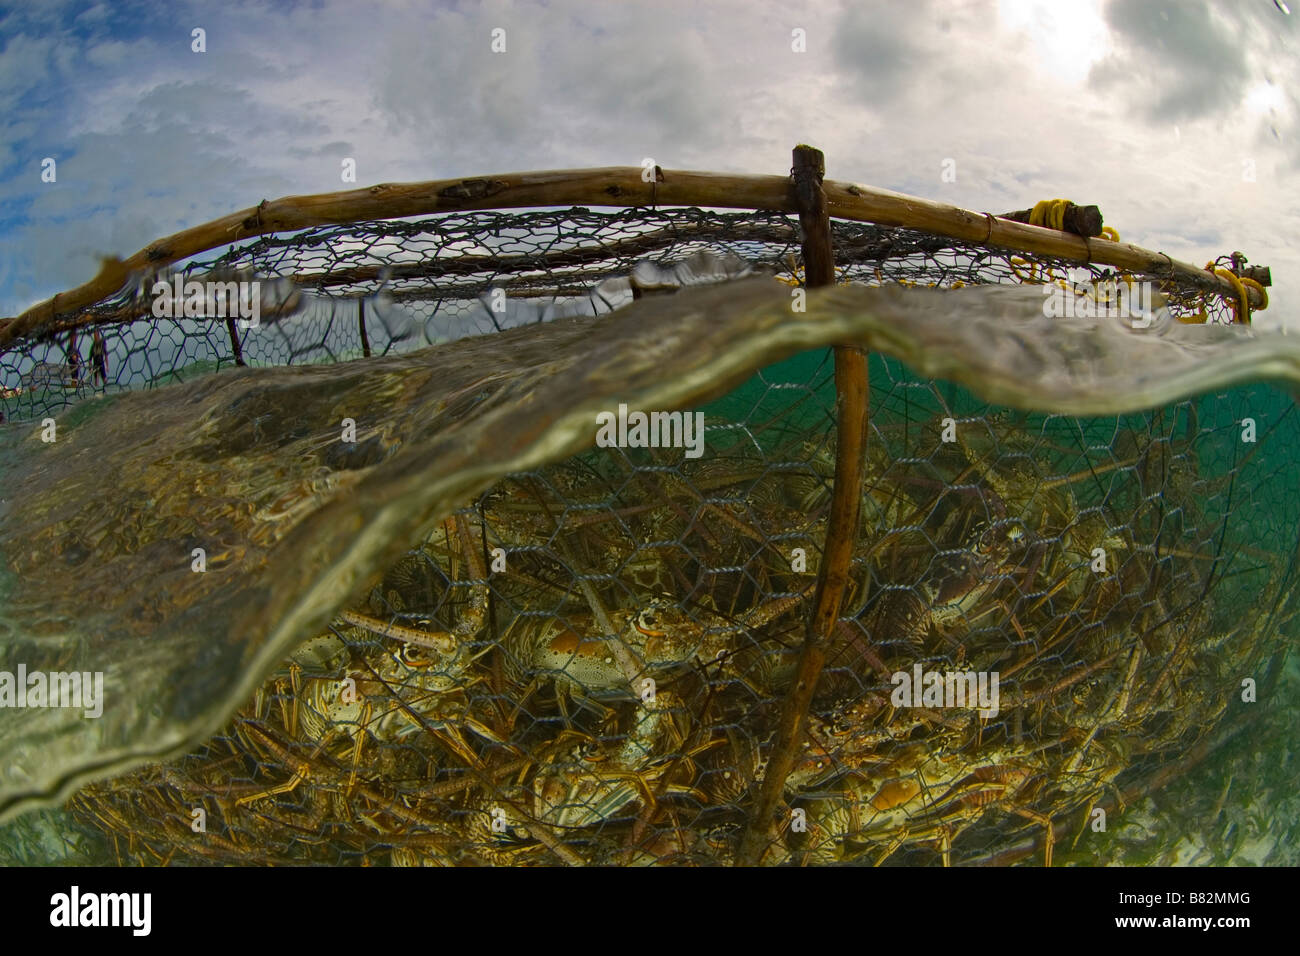 Lobsters in trap. Los Roques Venezuela, networks, underwater, ocean, sea, surface, overfishing, to fish - Stock Image